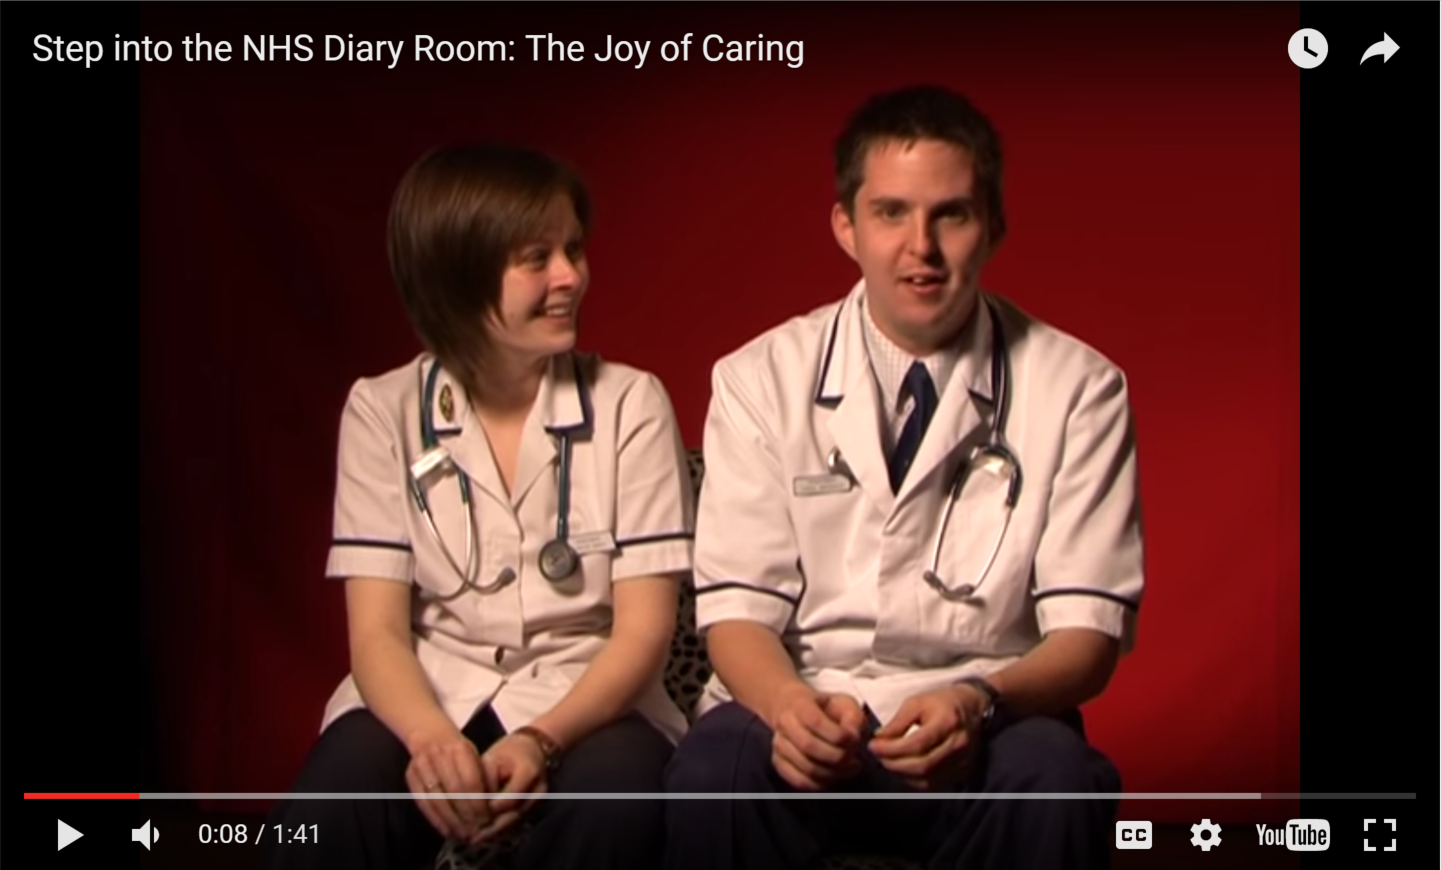 Joy of Caing video - image shows two nurses seated and facing the camera